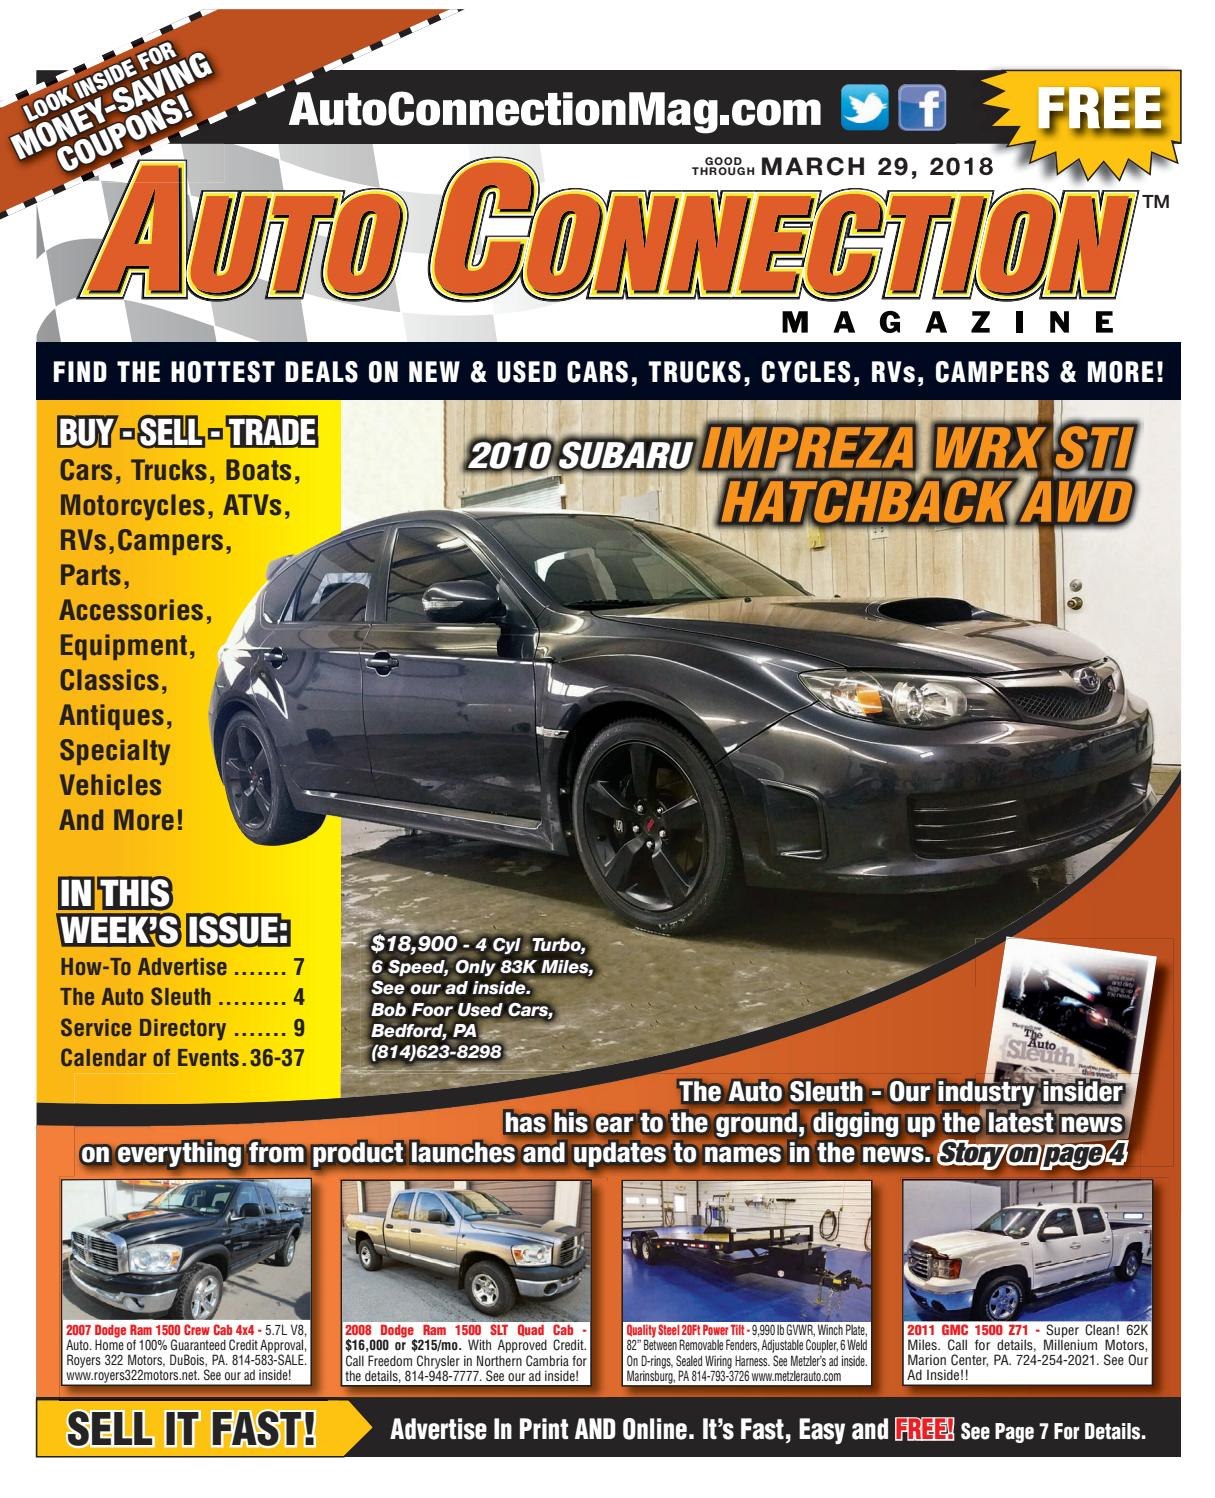 Fabulous 03 29 18 Auto Connection Magazine By Auto Connection Magazine Issuu Wiring Cloud Mangdienstapotheekhoekschewaardnl